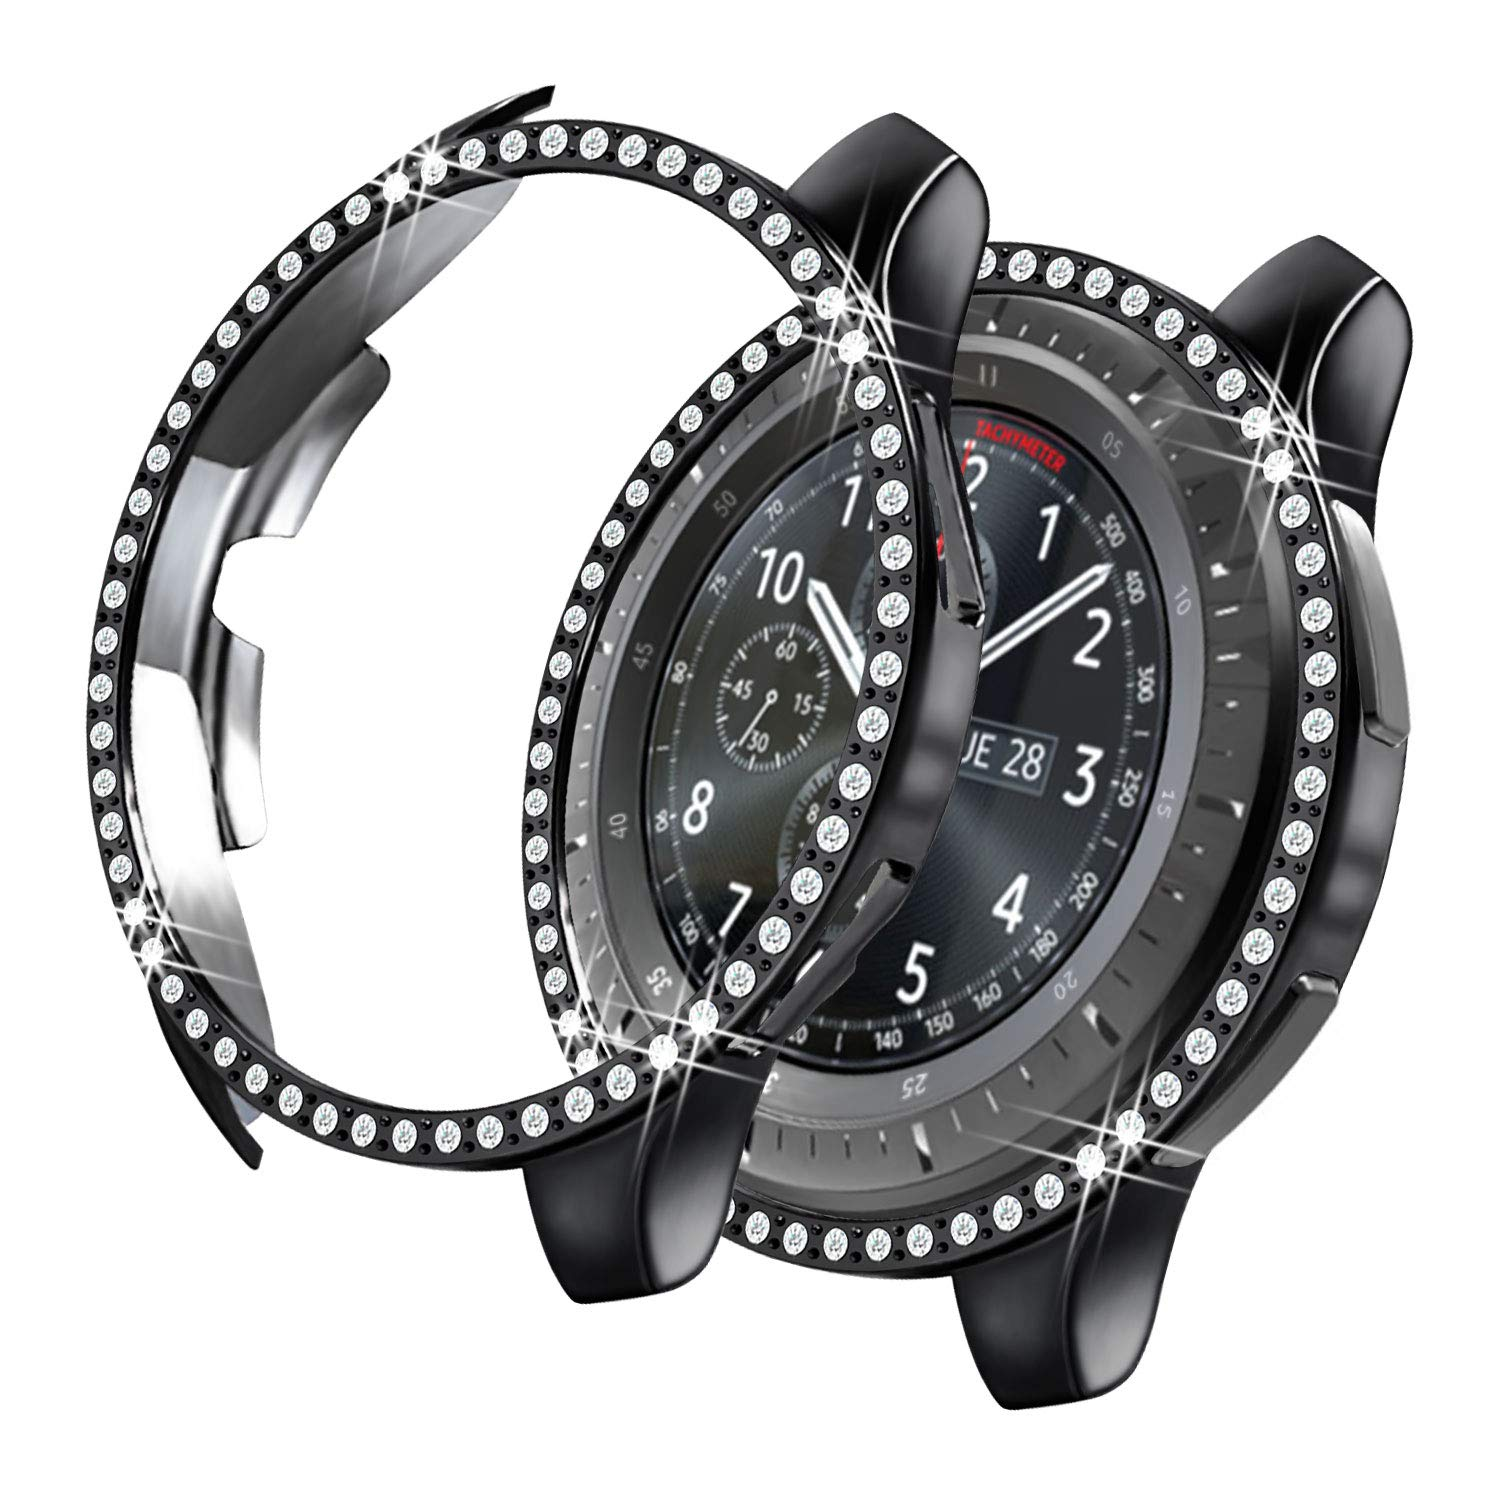 Yolovie Compatible with Samsung Galaxy Watch 46mm 42mm Case, Gear S3 Frontier Case Bling Crystal Rhinestone Bumper Shell Plated PC Protective Face ...